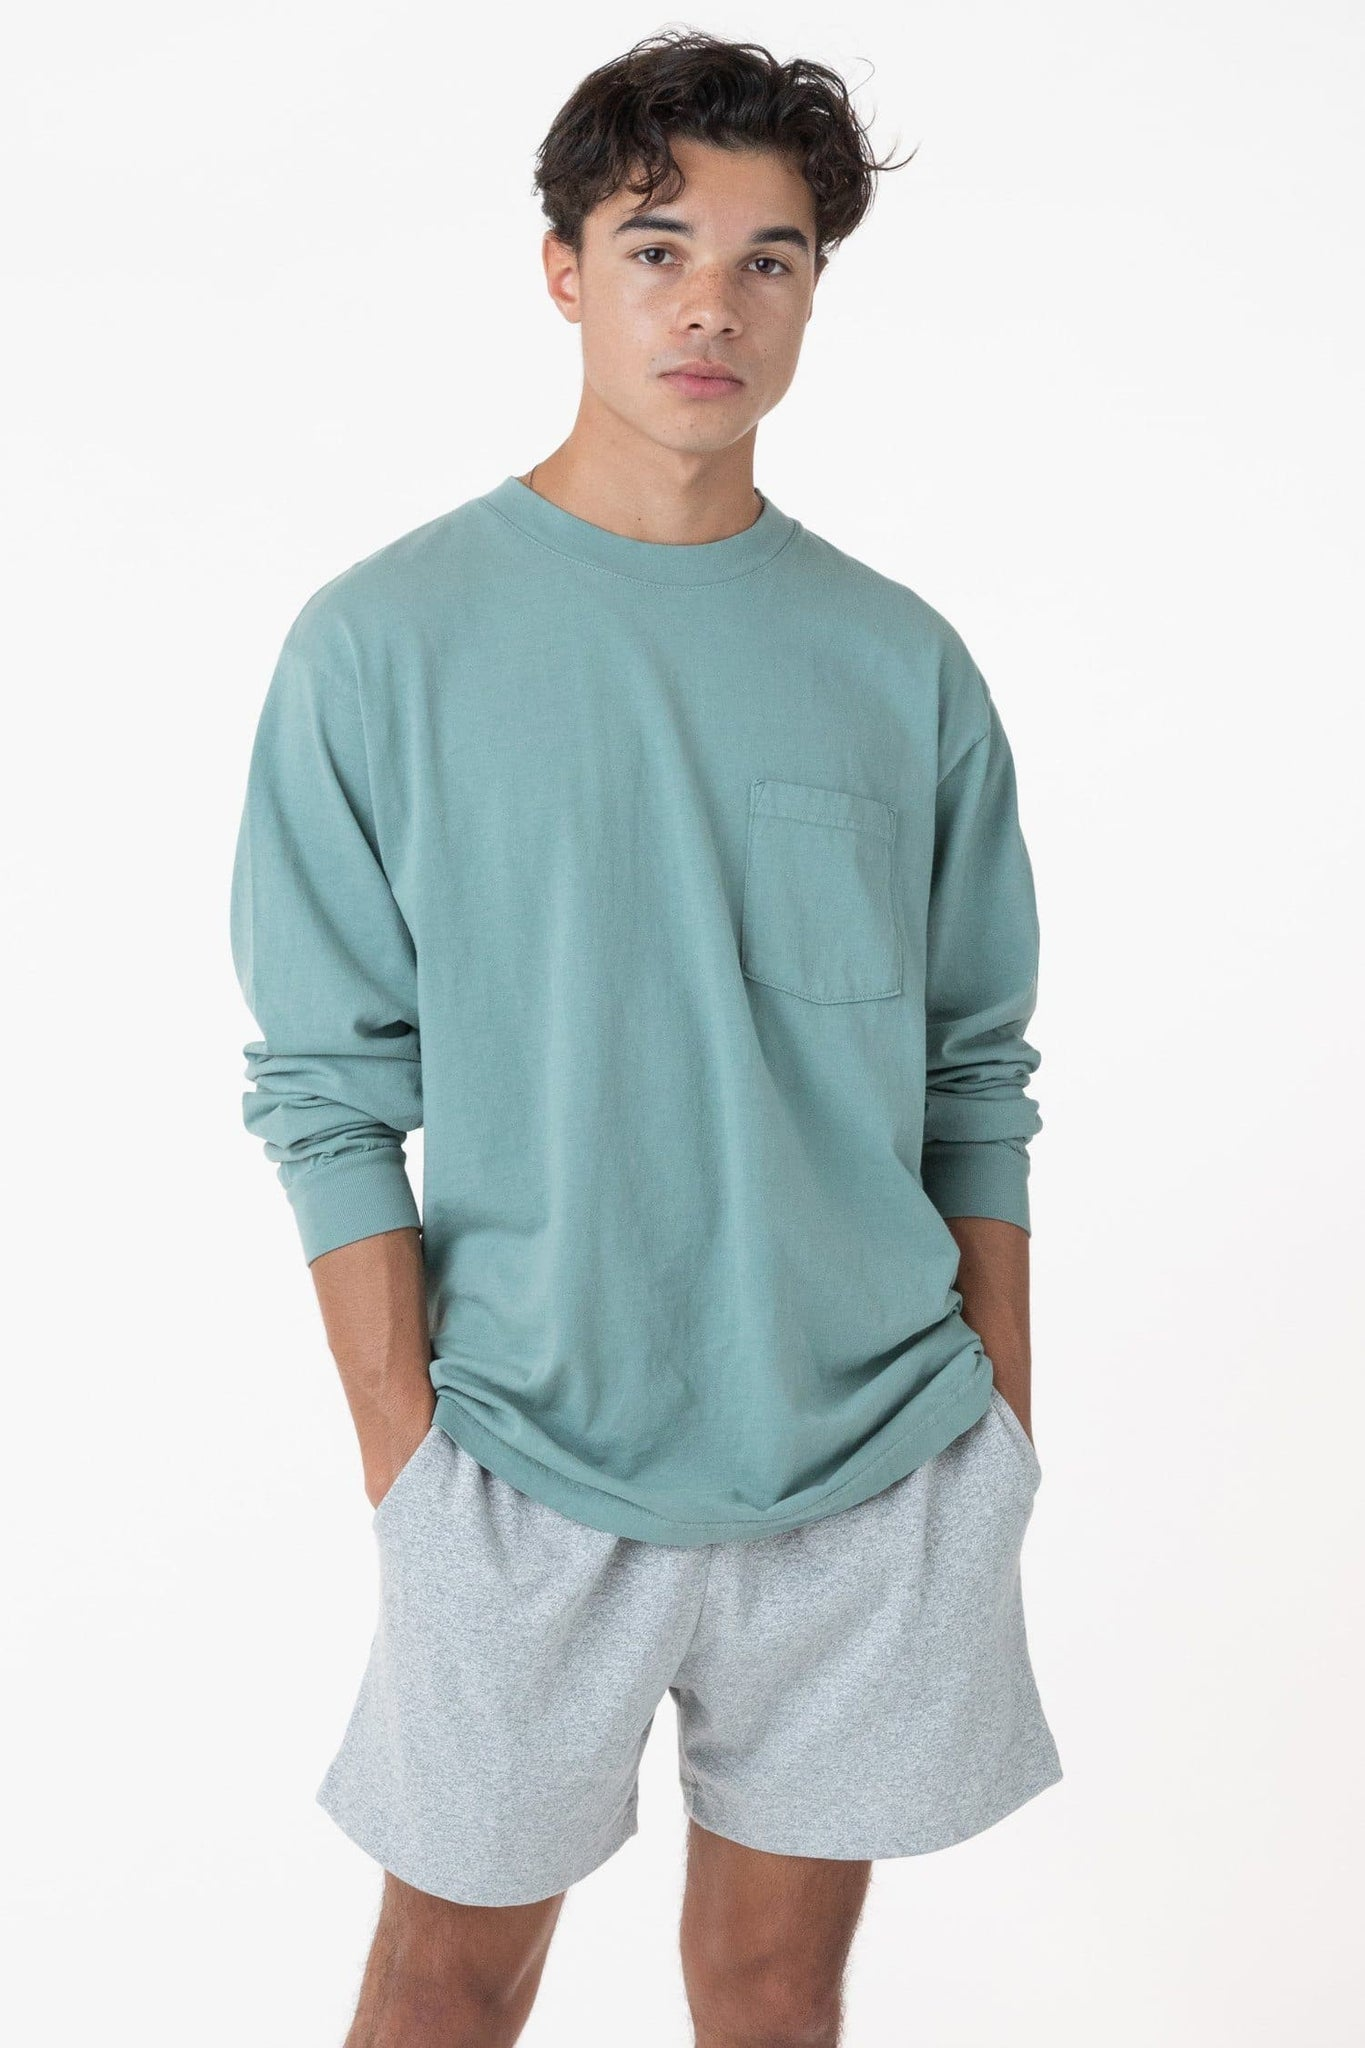 1810GD - Long Sleeve Garment Dye Pocket T-Shirt